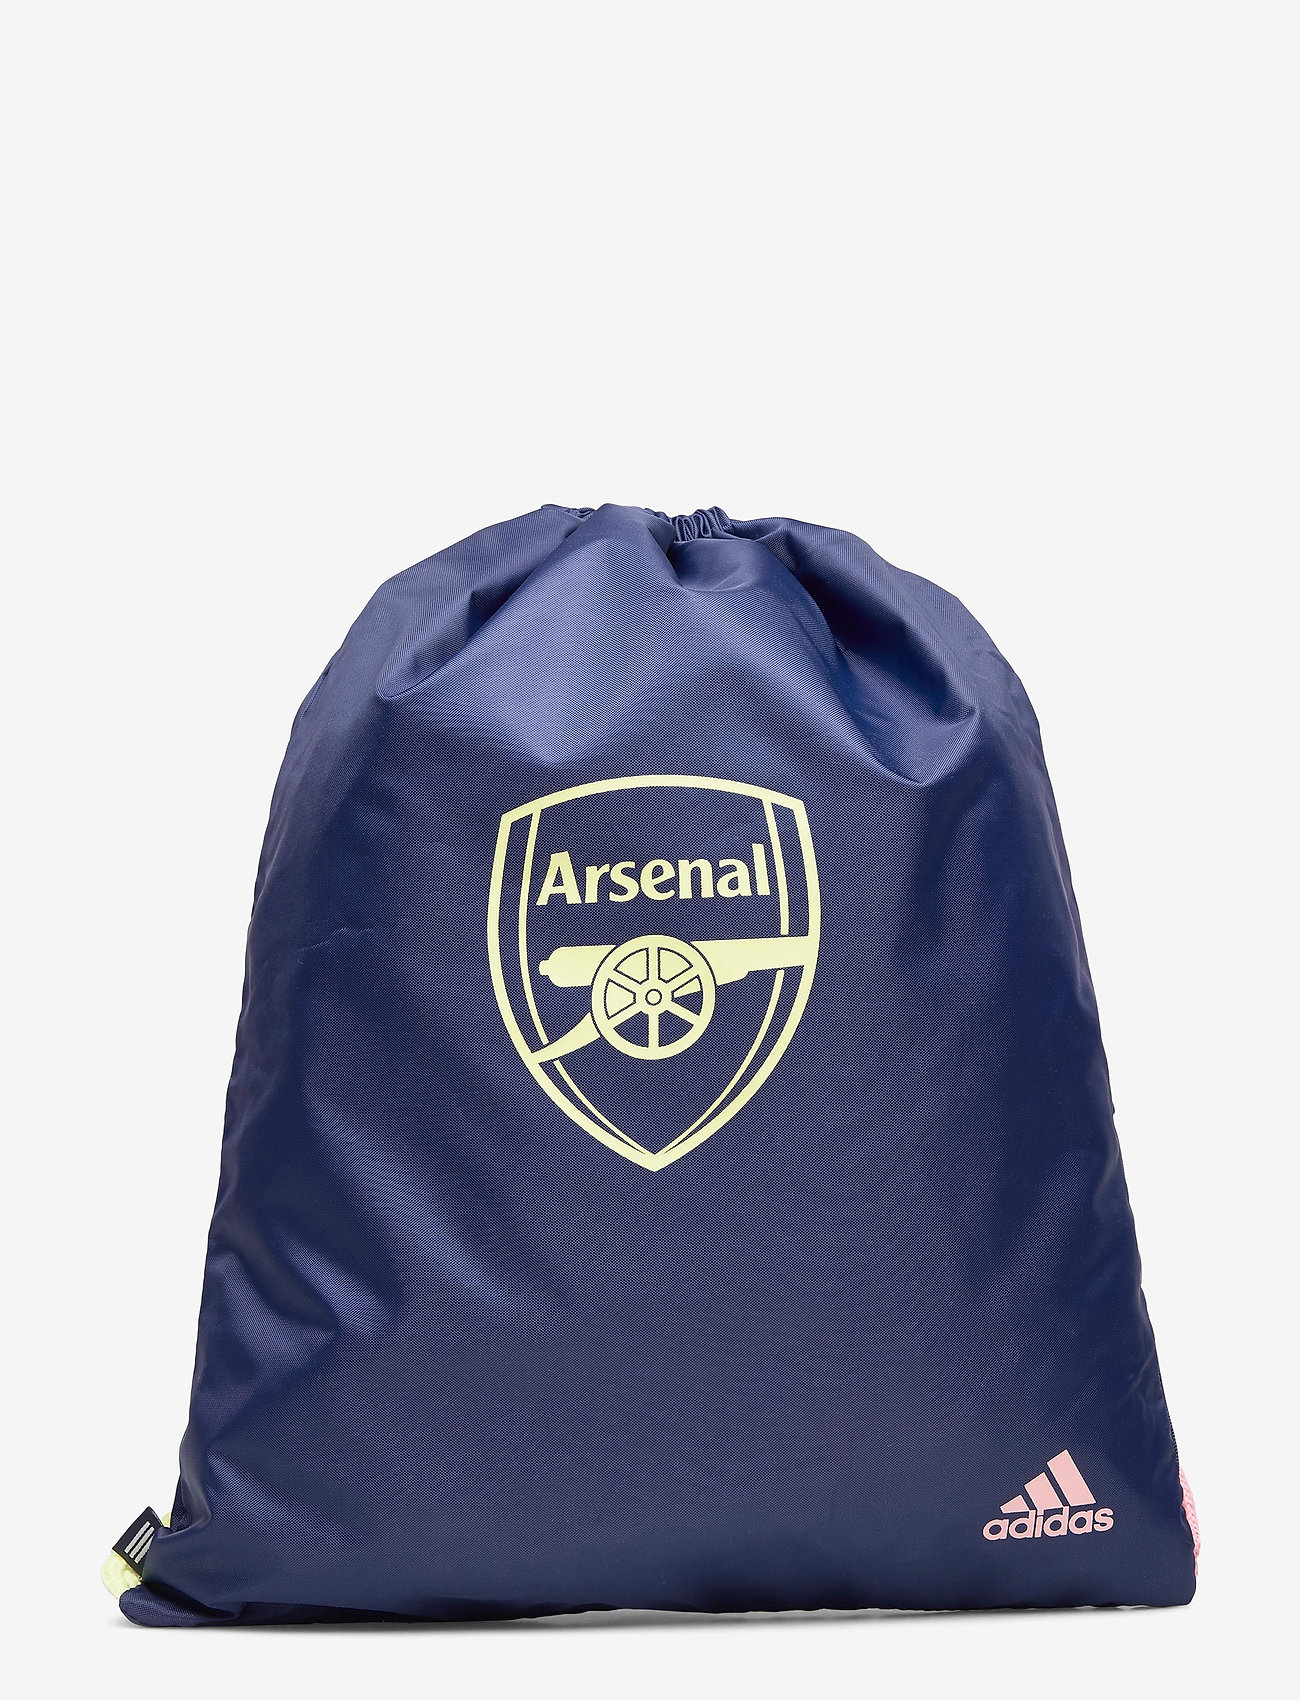 adidas Performance - Arsenal Gym Sack - training bags - tecind/glopnk/yeltin - 0